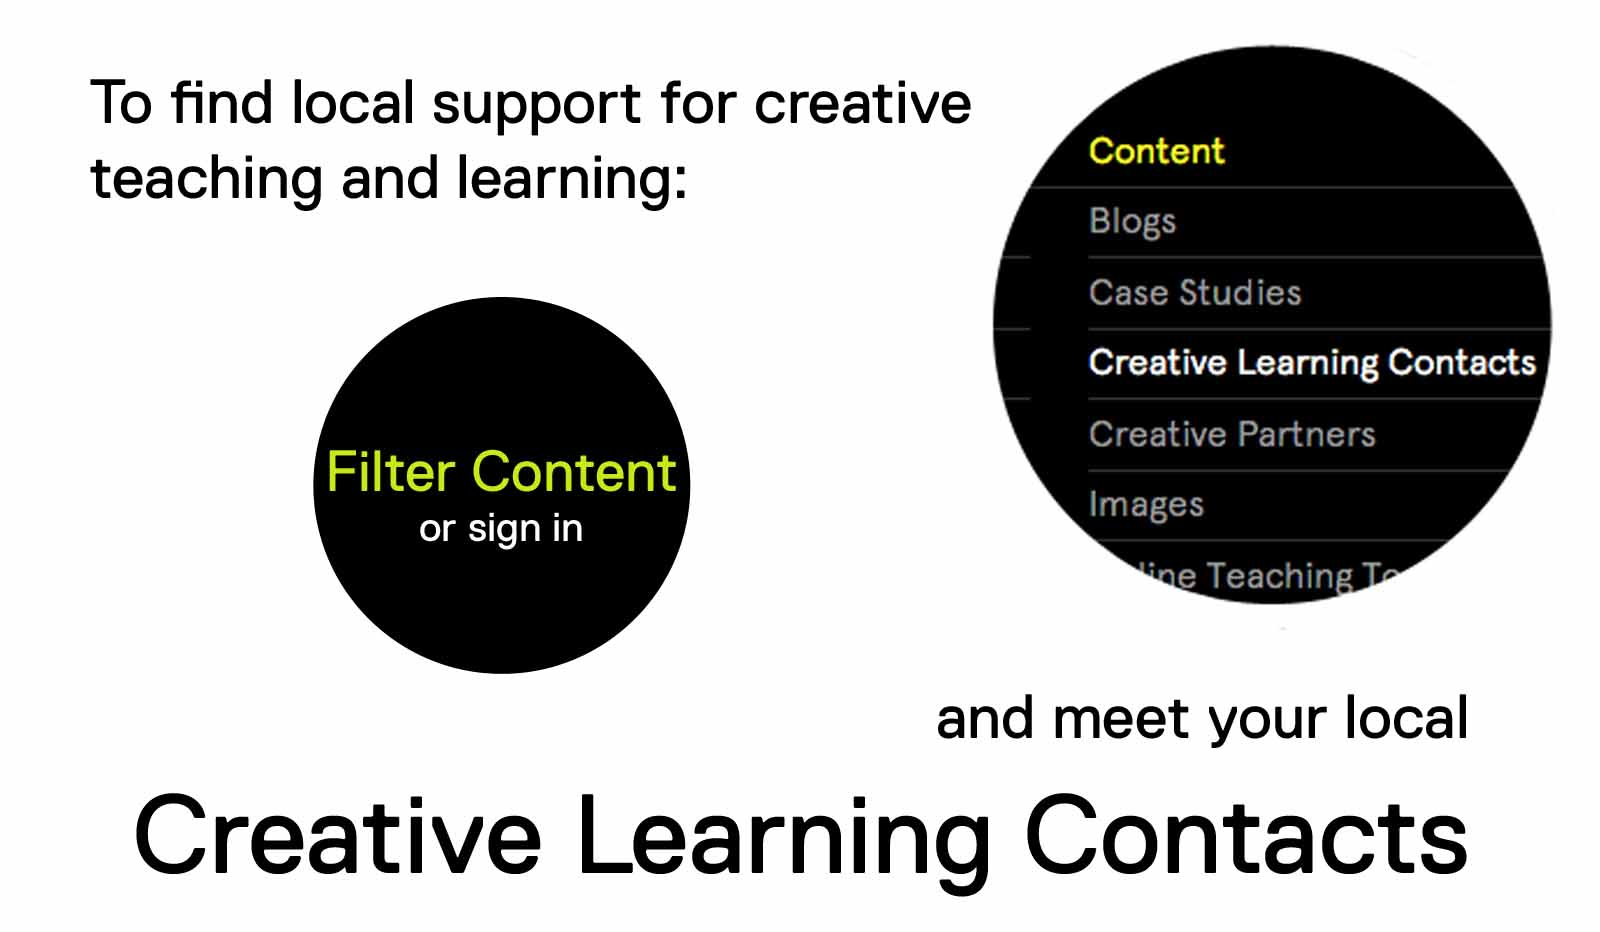 Creative Learning Contacts